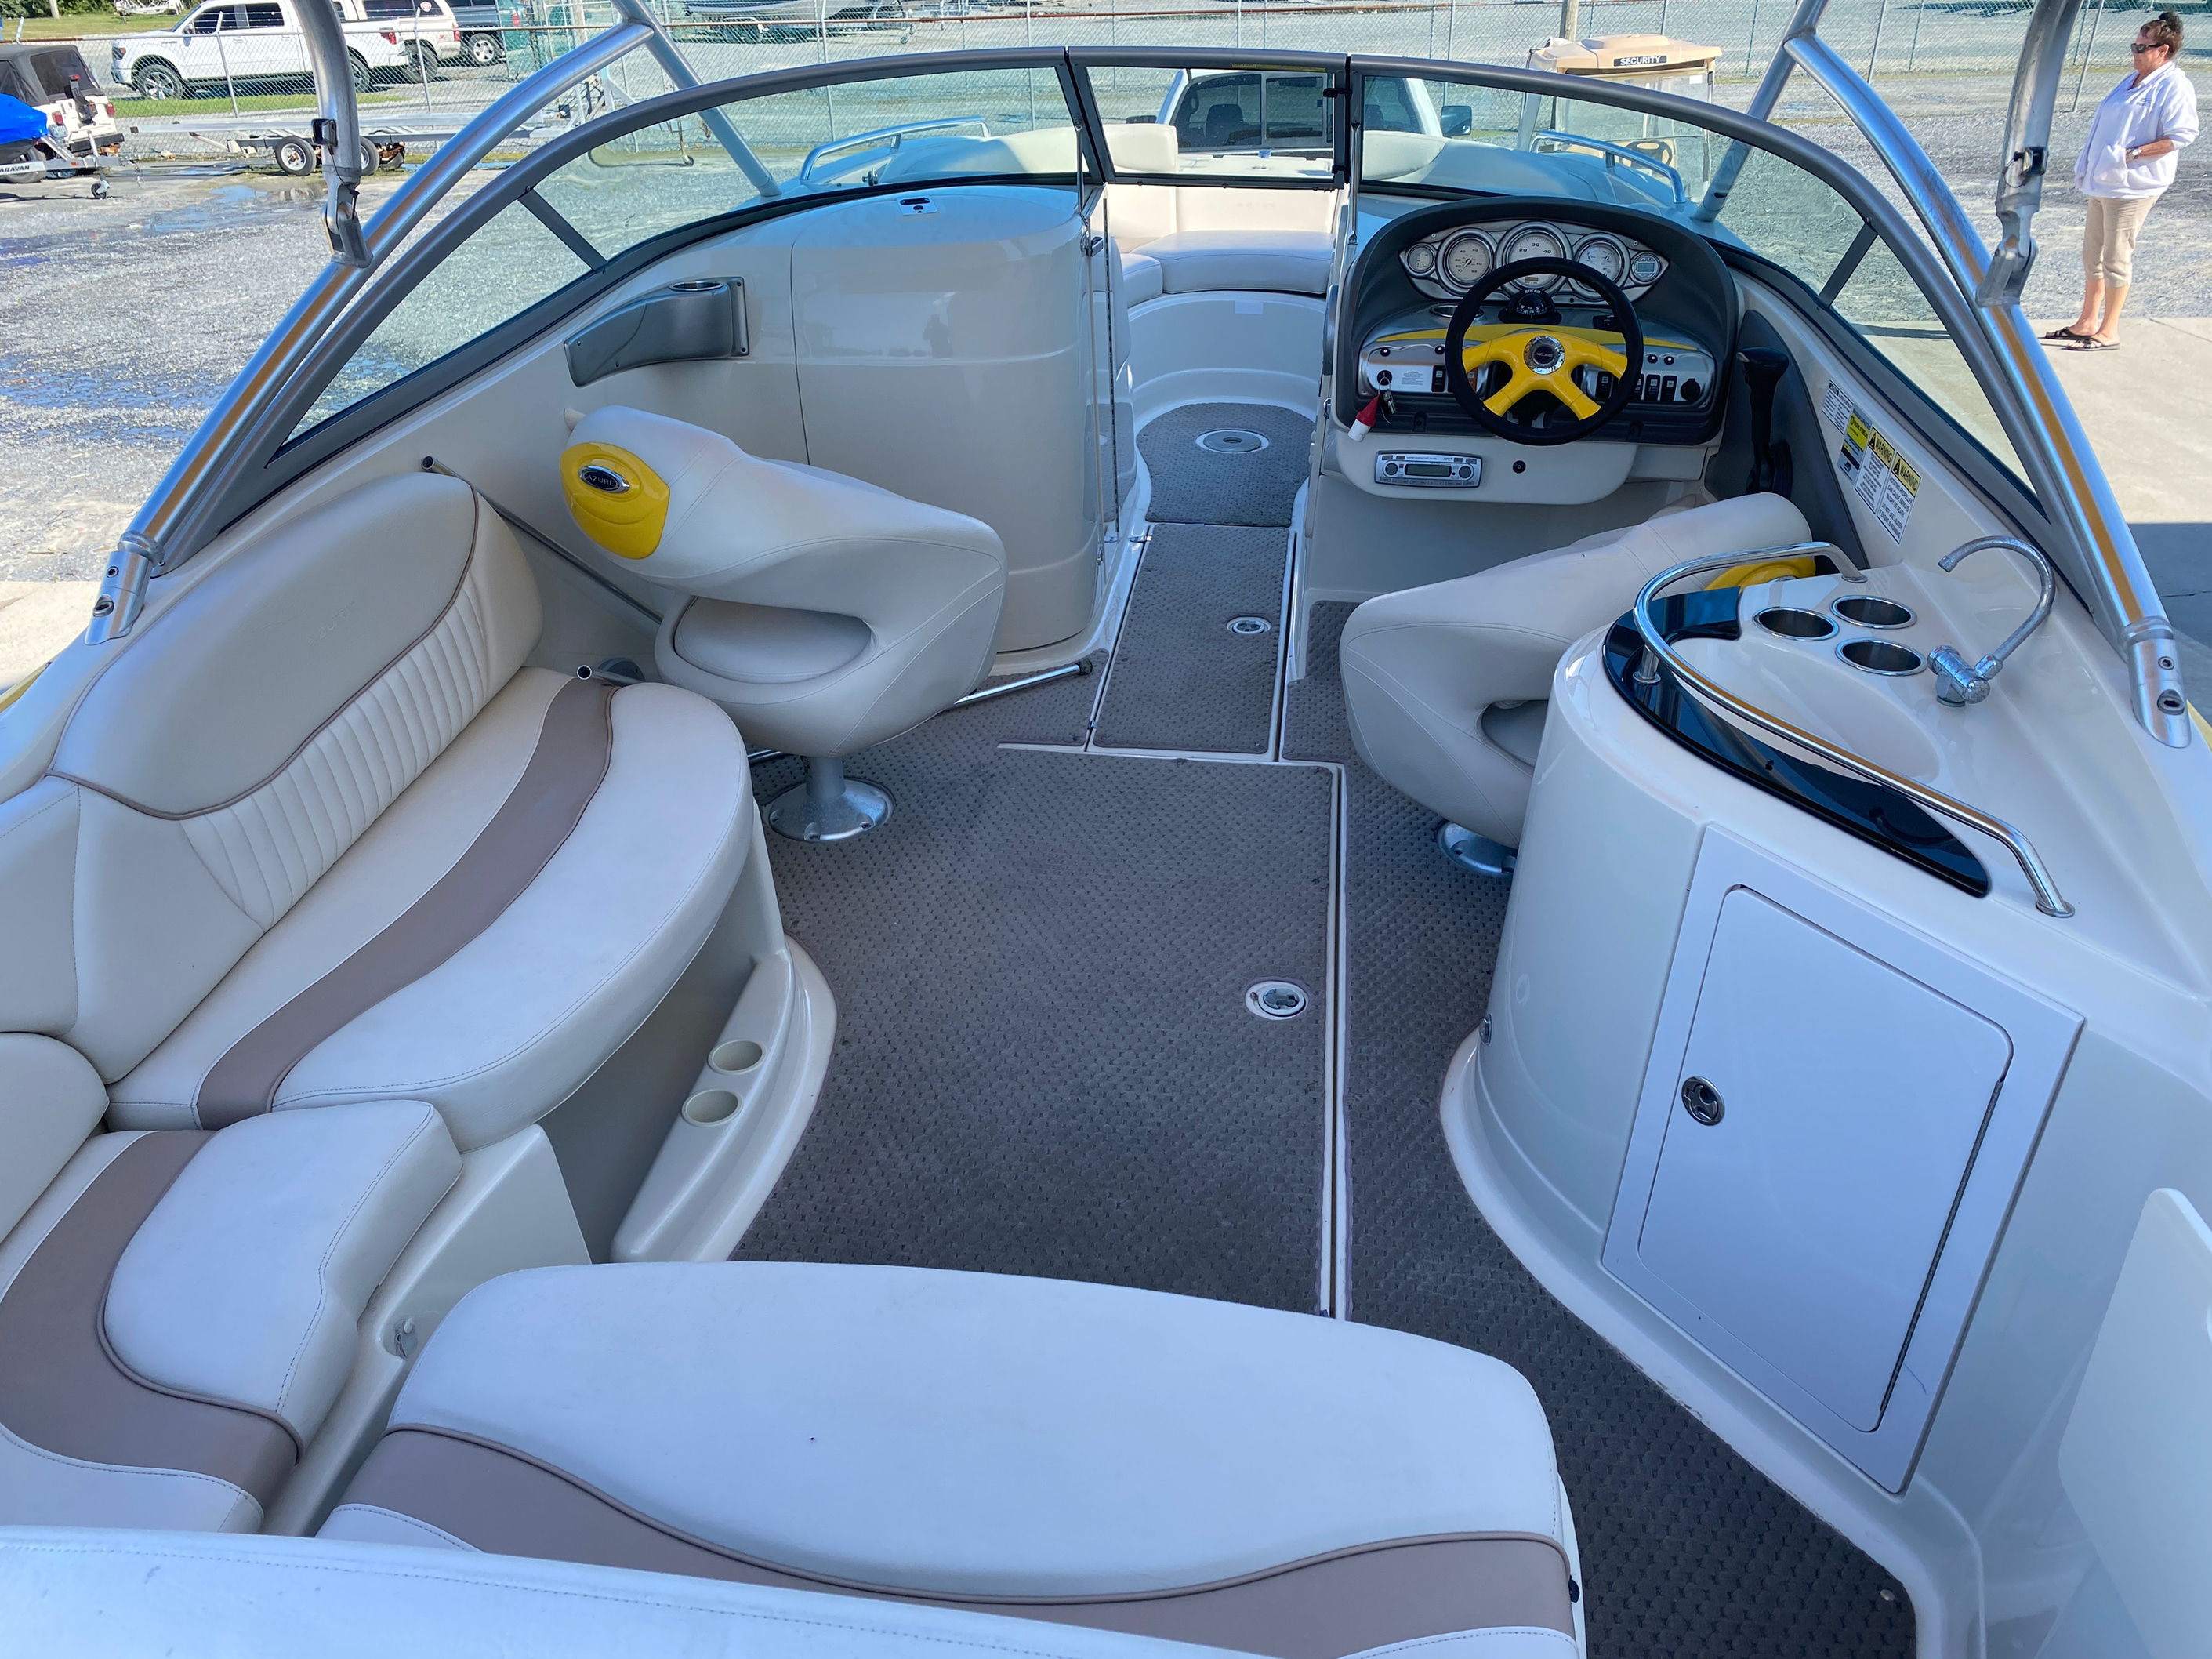 2008 Azure boat for sale, model of the boat is AZ 240 & Image # 3 of 18